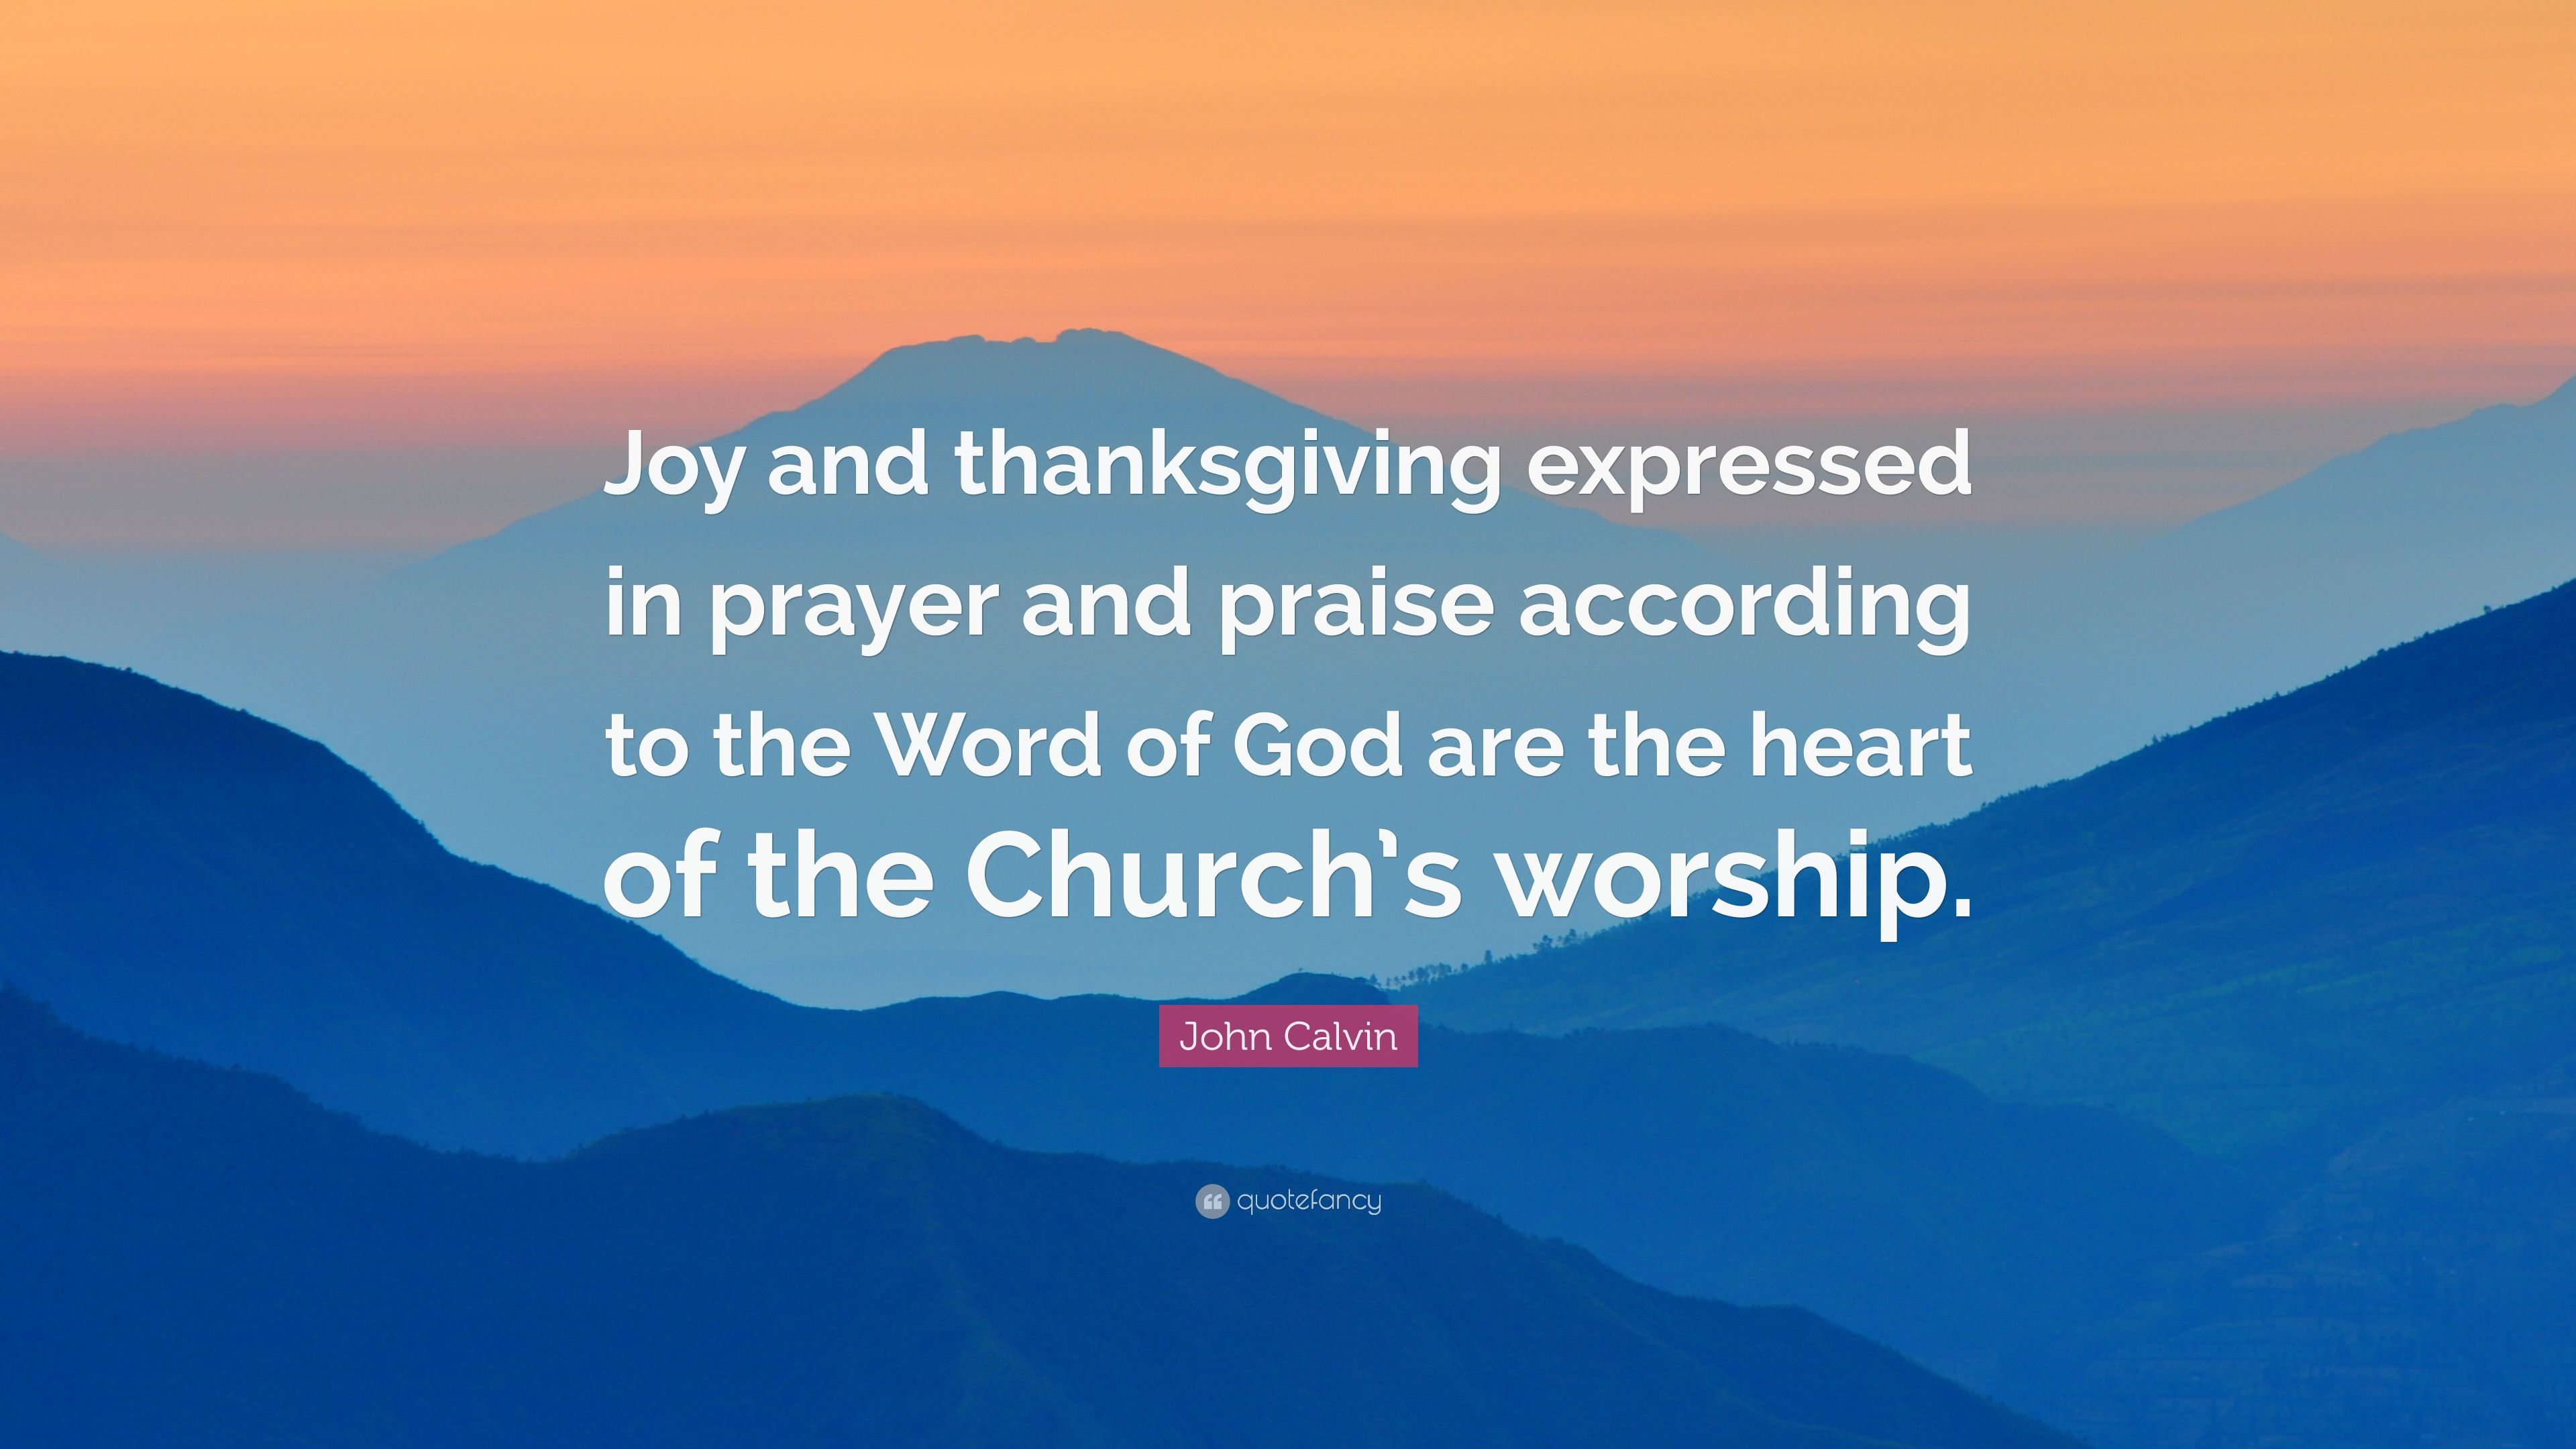 dating according to the word of god For the word of god is quick, and powerful, and sharper than any two edged sword, piercing even to the dividing asunder of soul and spirit, and of the joints and marrow, and is a discerner of the thoughts and intents of the heart.